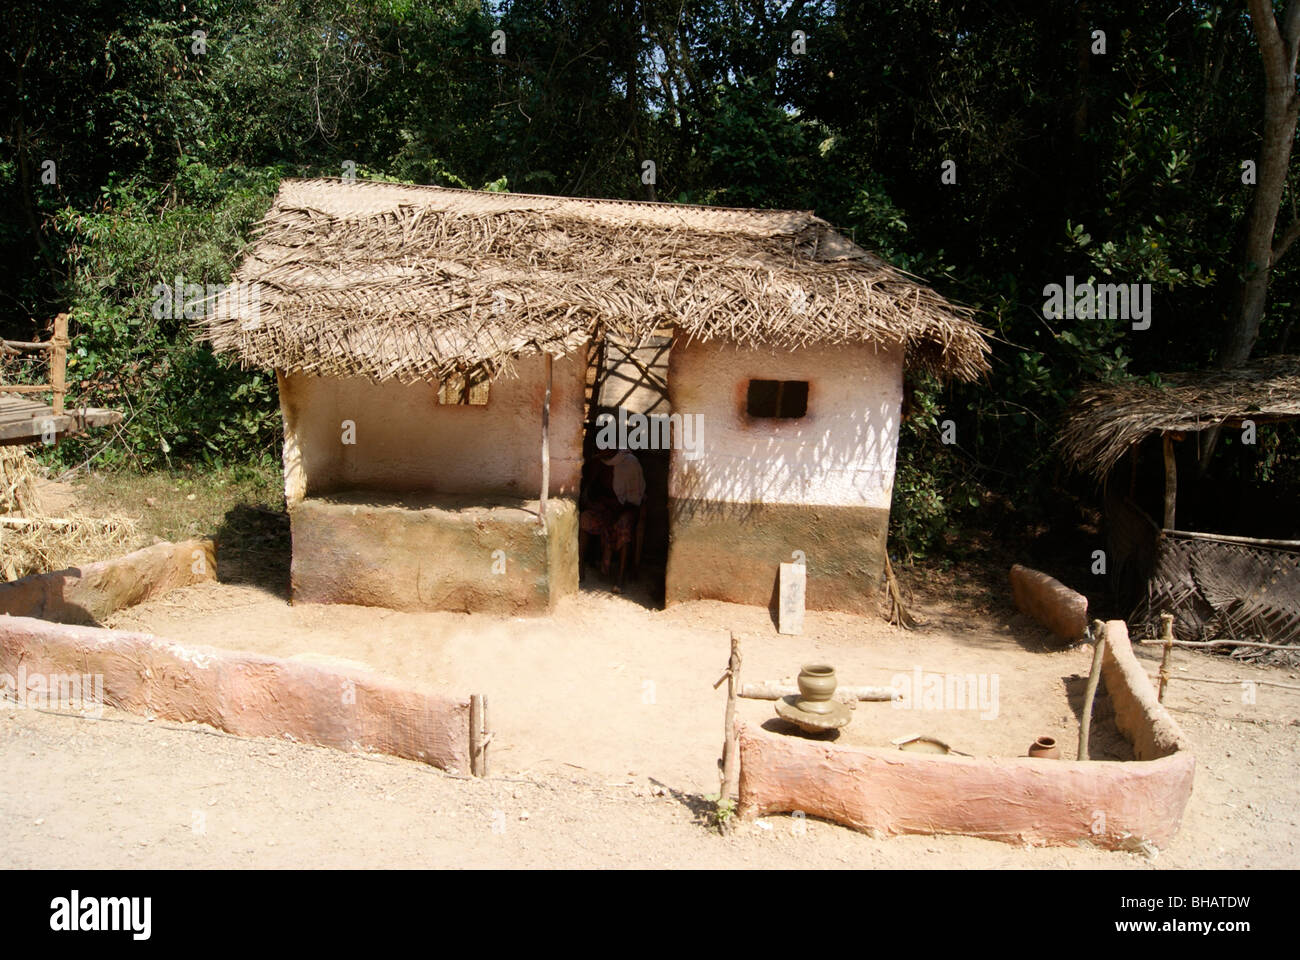 A Poor Man Hut In The Village Area Of India Coconut Leafs